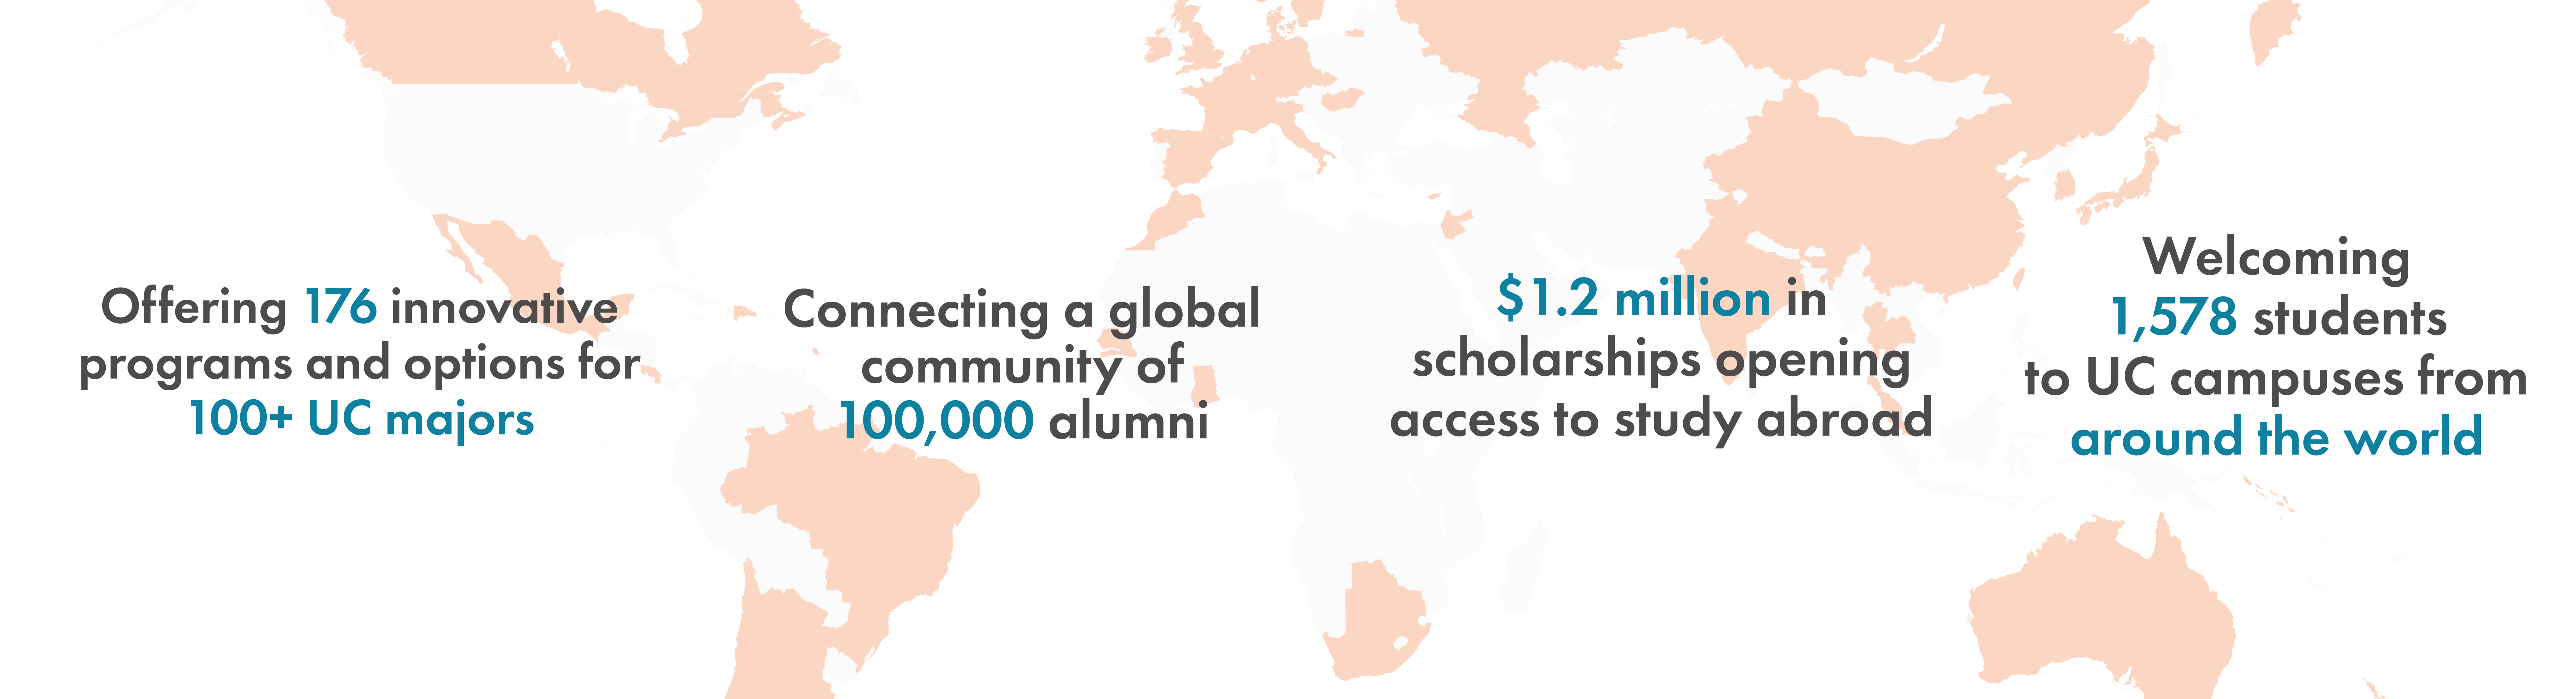 """World map with UCEAP countries highlighting, with text over it saying """"Offering 176 innovative programs and options for 100+ UC majors, Connecting a global community of 100,000 alumni, $1.2 million in scholarships opening access to study abroad, & Welcoming 1578 students to UC campuses from around the world."""""""